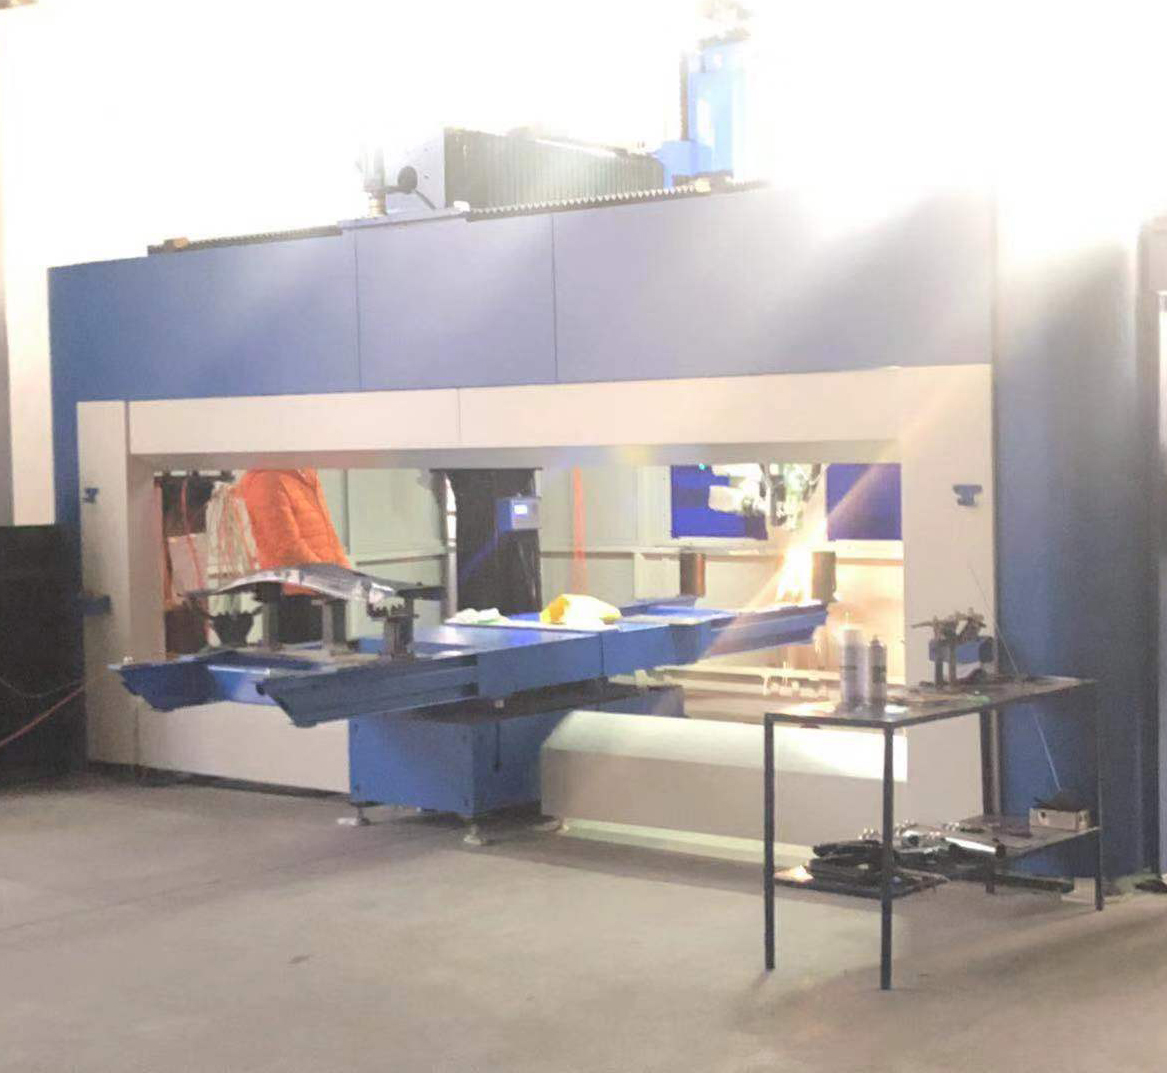 Three-dimensional five-axis laser cutting machine